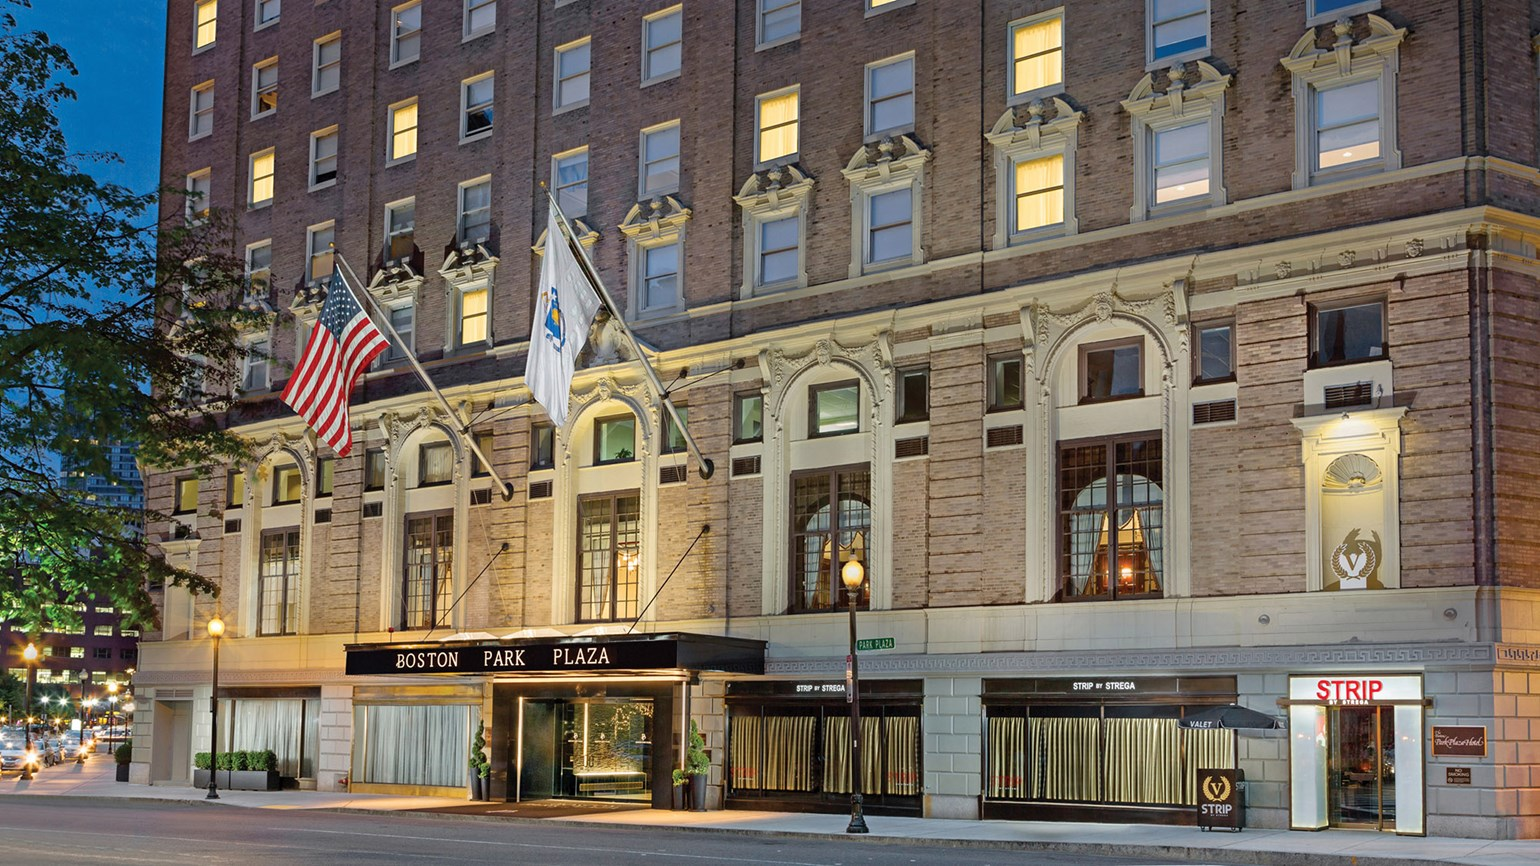 Boston Park Plaza celebrates 90 years with two packages